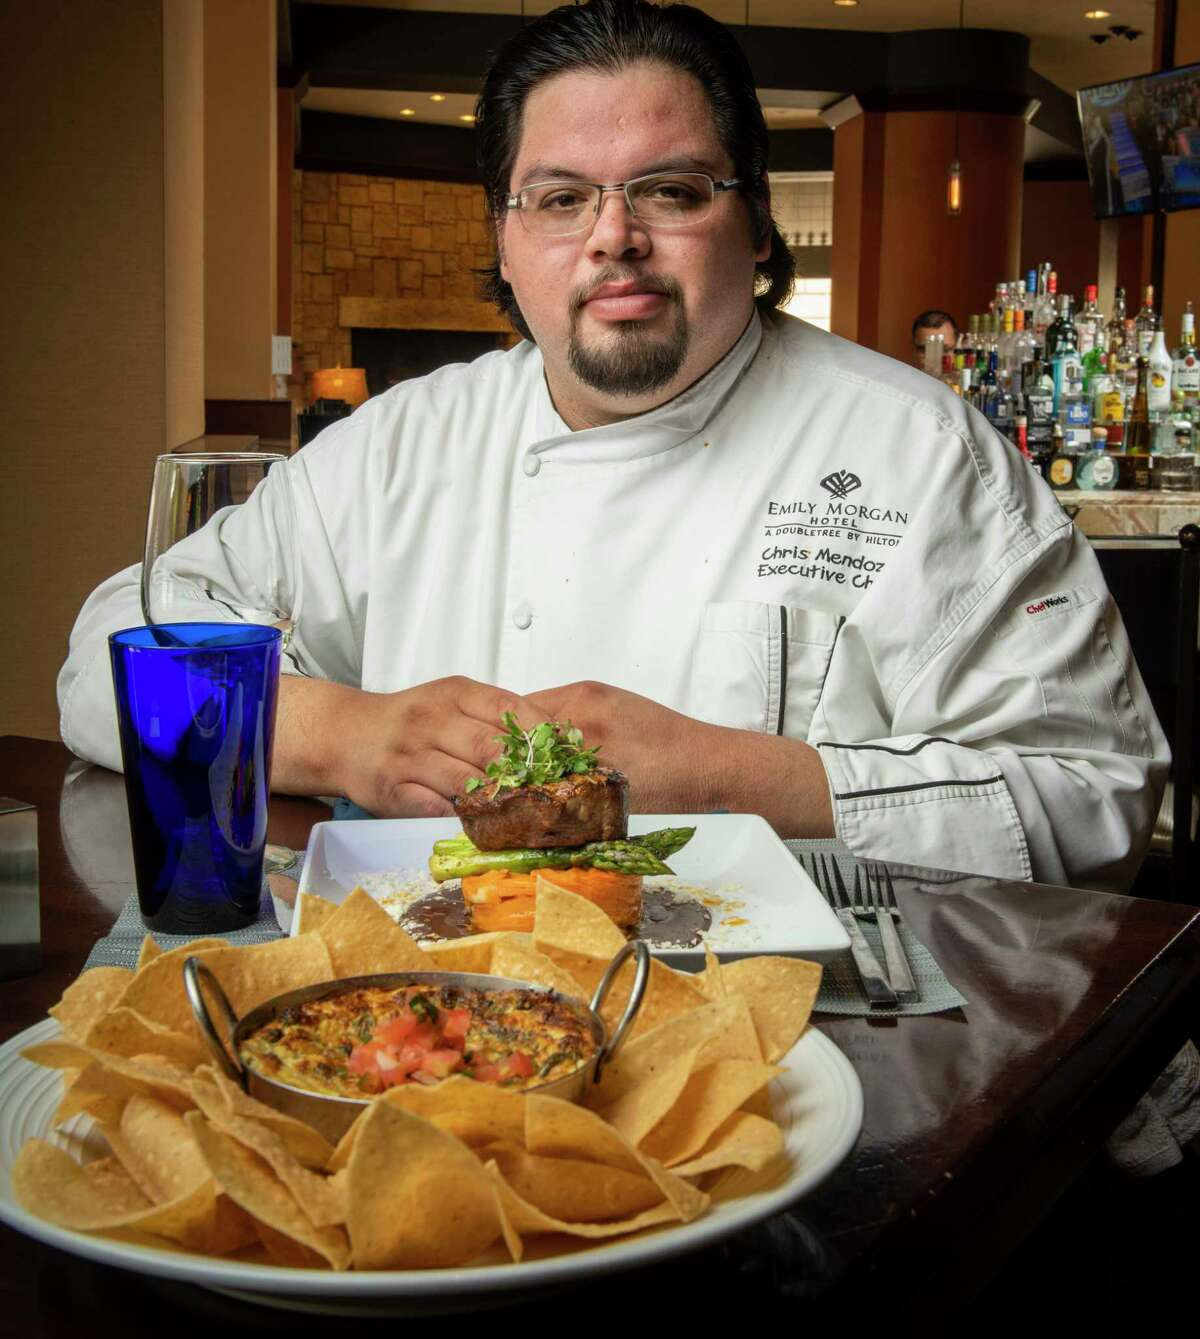 Oro Restaurant and Bar's executive chef Christopher Mendoza